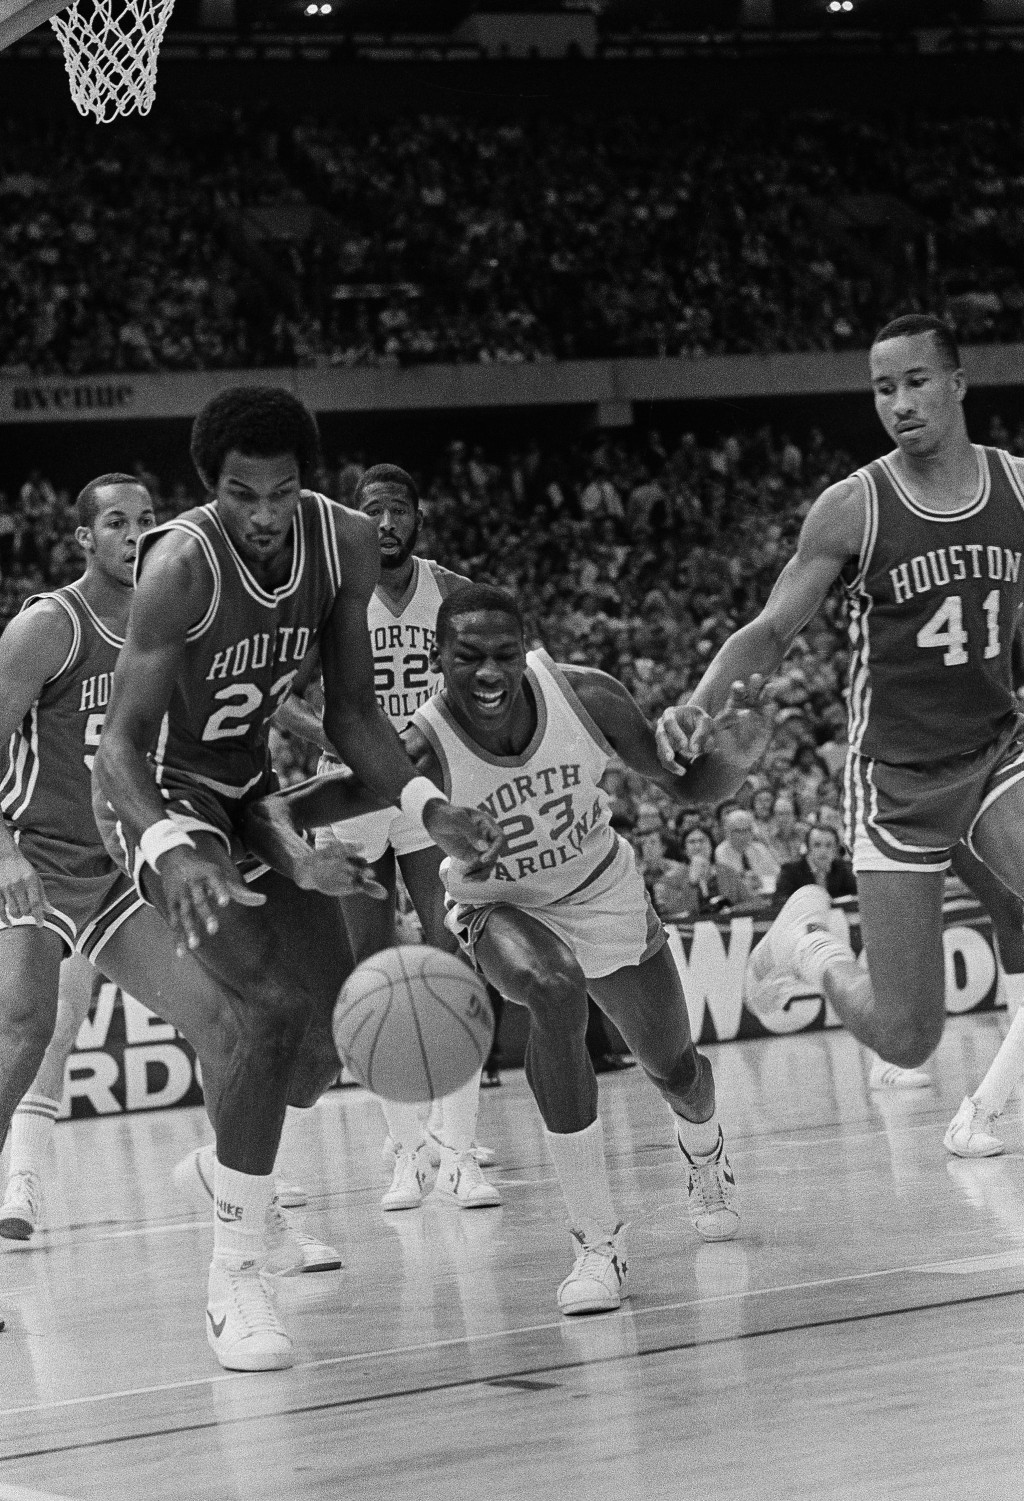 File- This March 29, 1982, file photo shows Houston's Clyde Drexler, left, and North Carolina's Michael Jordan, center, battling for the ball  during ...